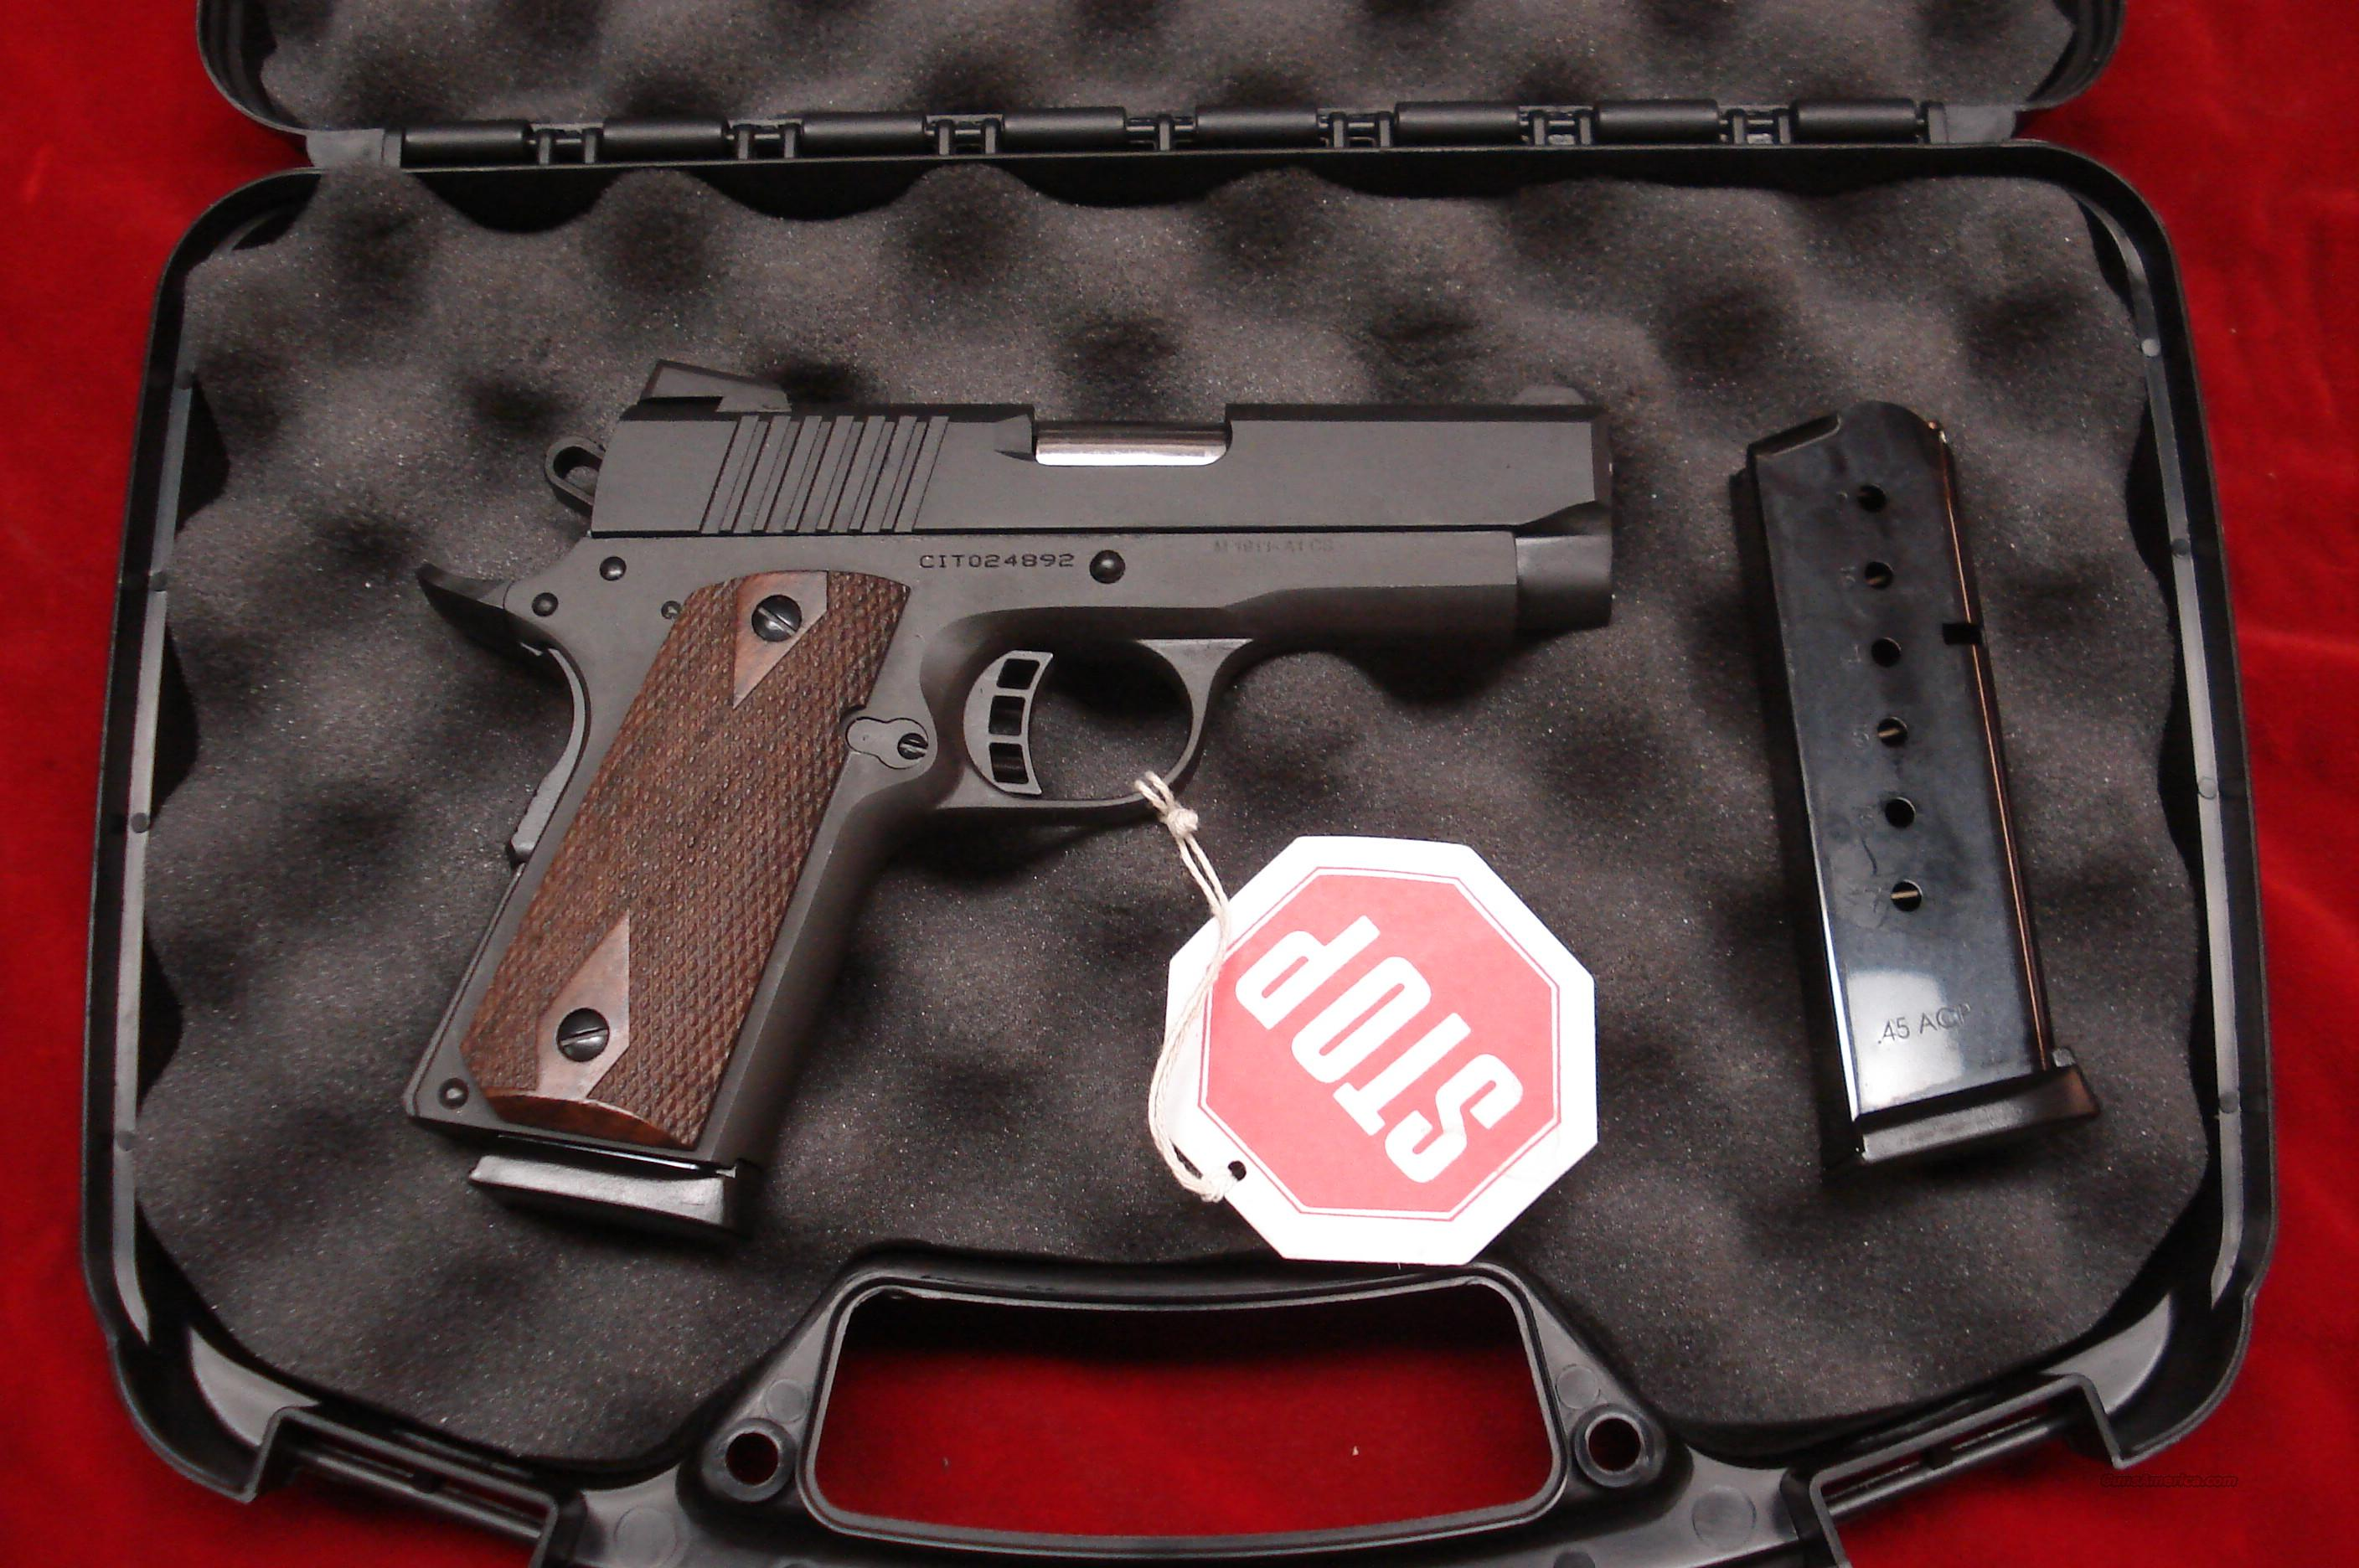 ARMSCOR PRECISION CITADEL COMPACT 45ACP PARKERIZED NEW  Guns > Pistols > 1911 Pistol Copies (non-Colt)